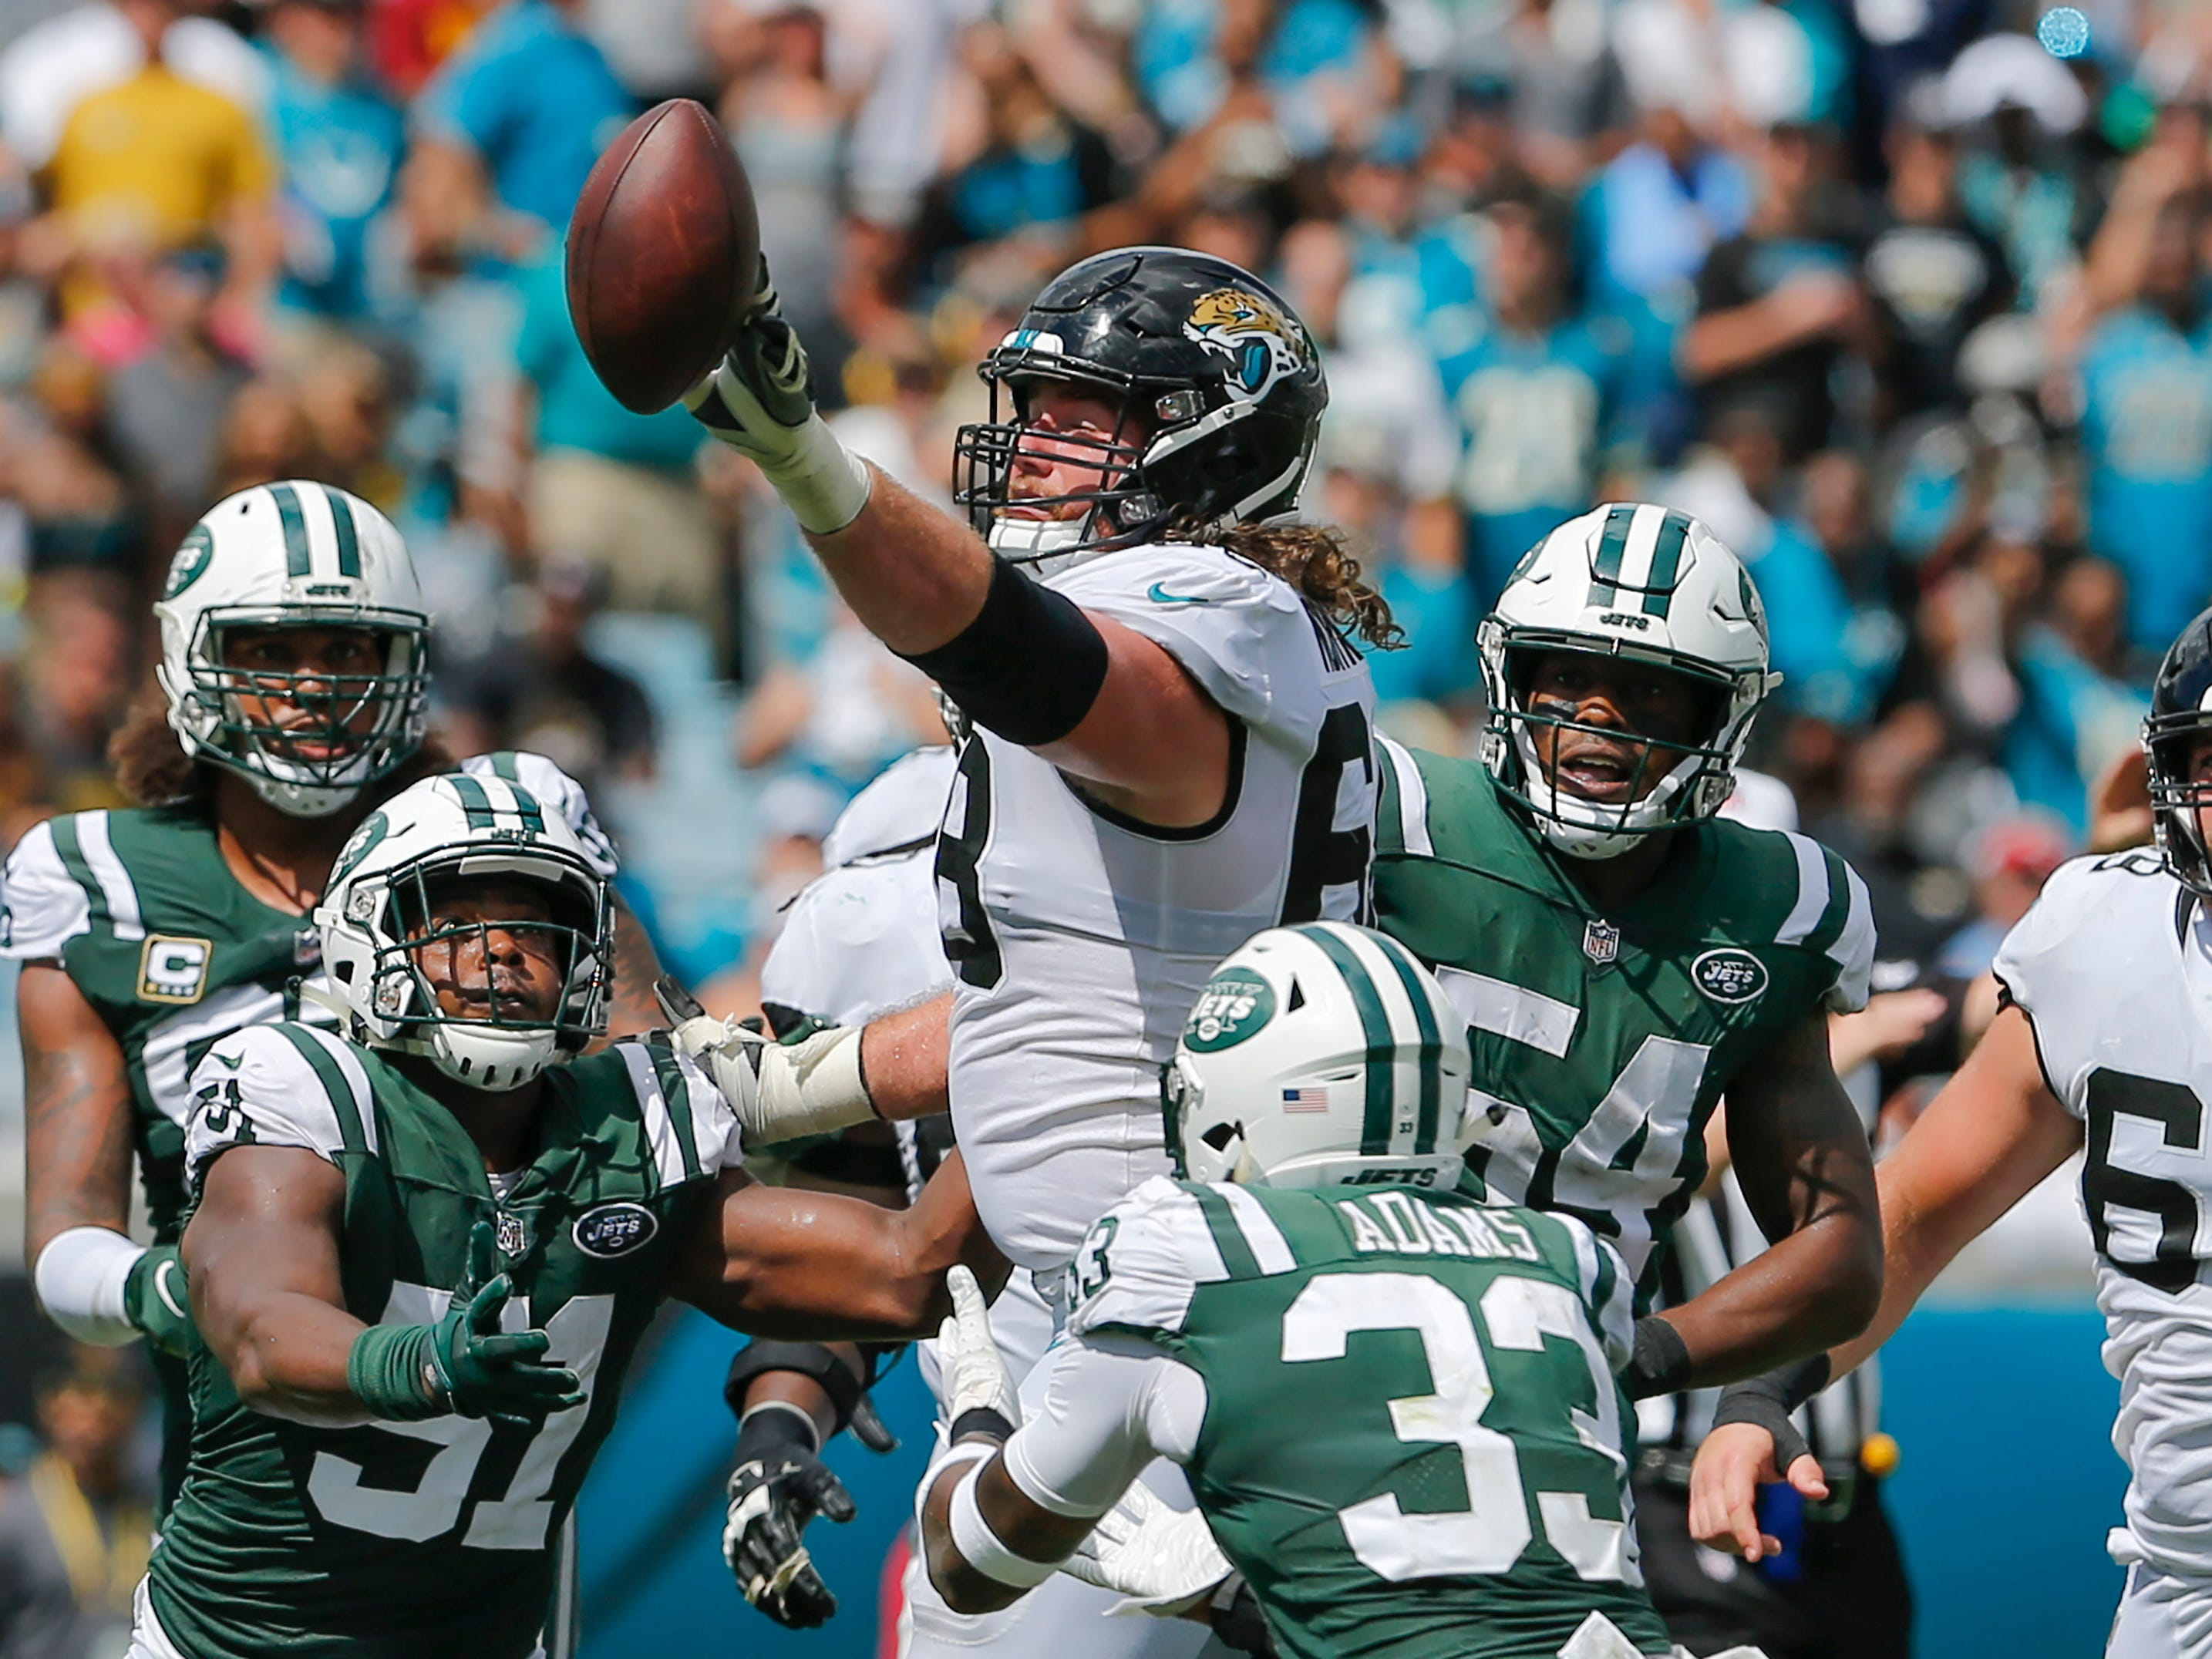 Jacksonville Jaguars offensive guard Andrew Norwell (68) bats down a tipped pass to prevent an interception during the second quarter against the New York Jets at TIAA Bank Field.